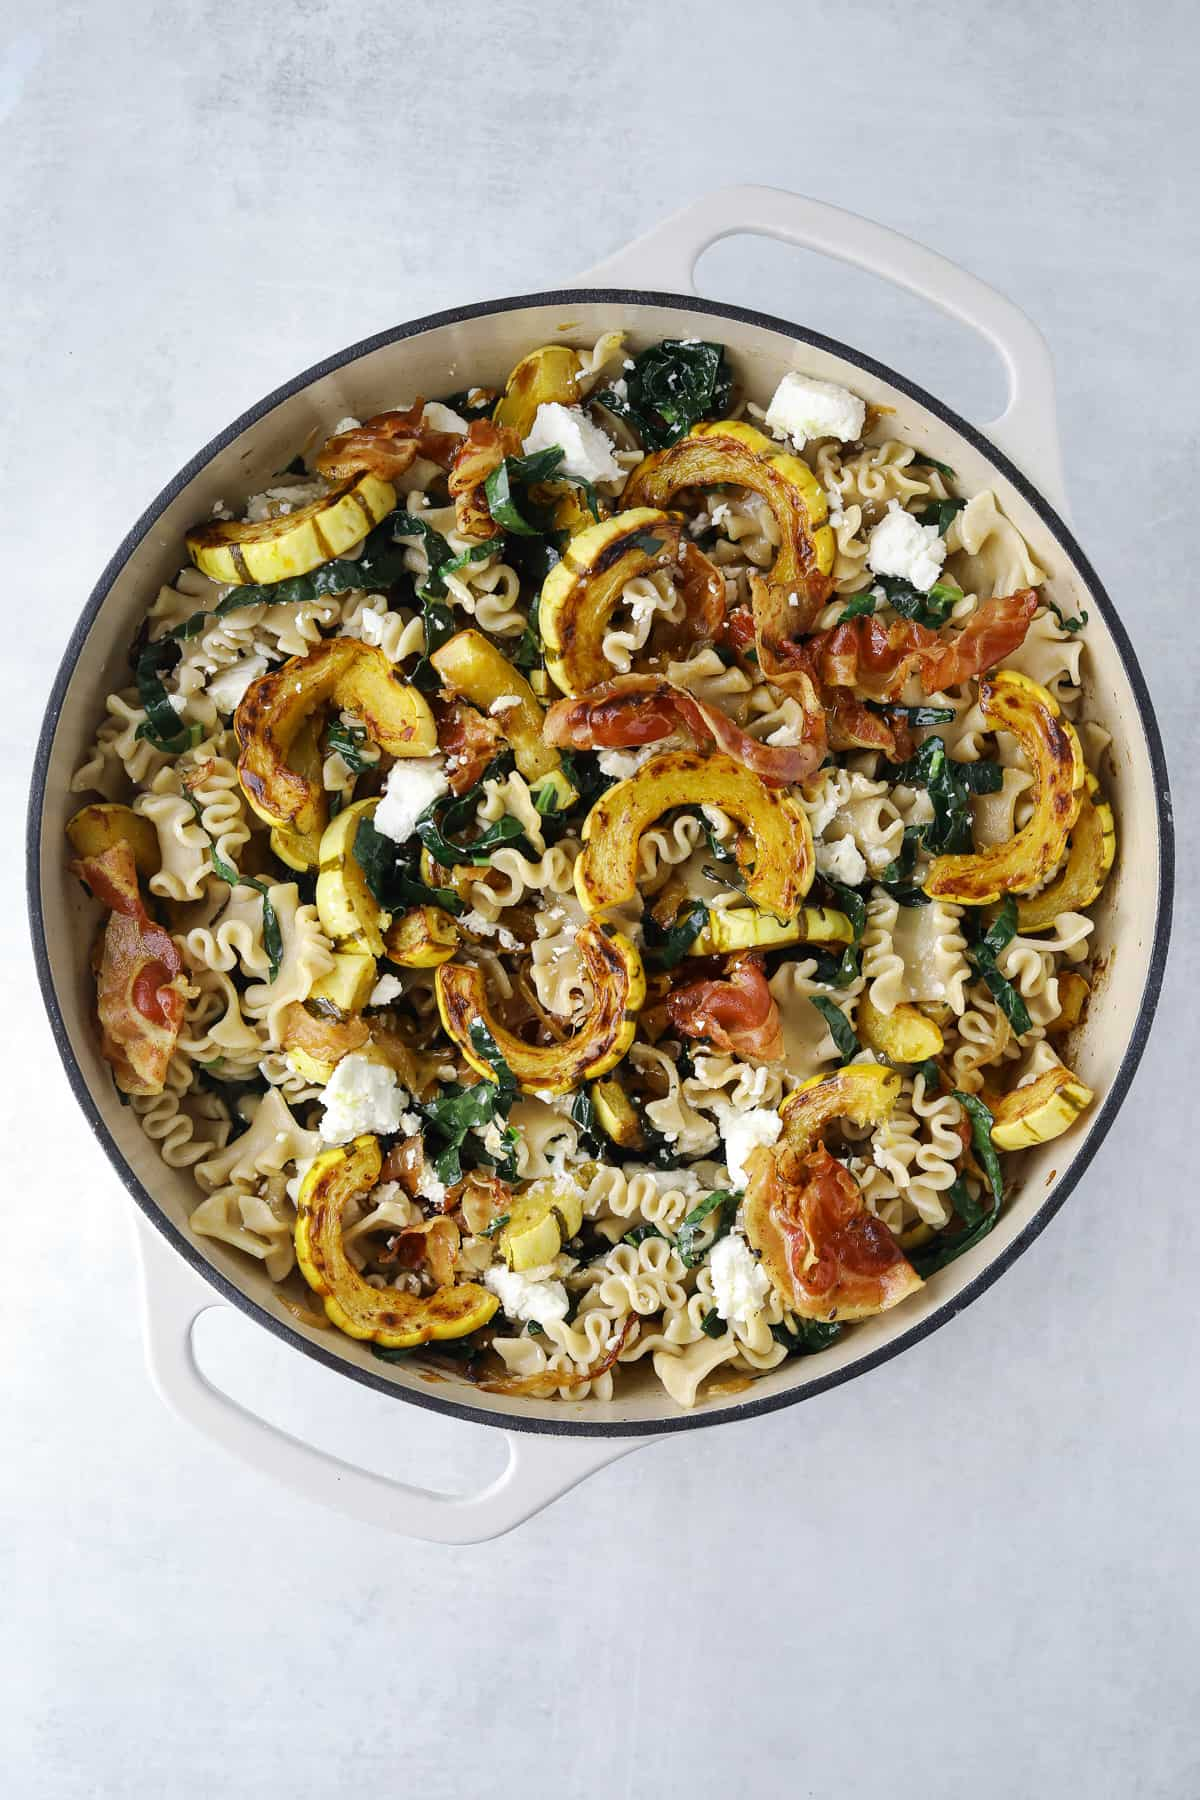 a cream colored pot filled with pasta, goat cheese, pancetta, kale and roasted delicata squash